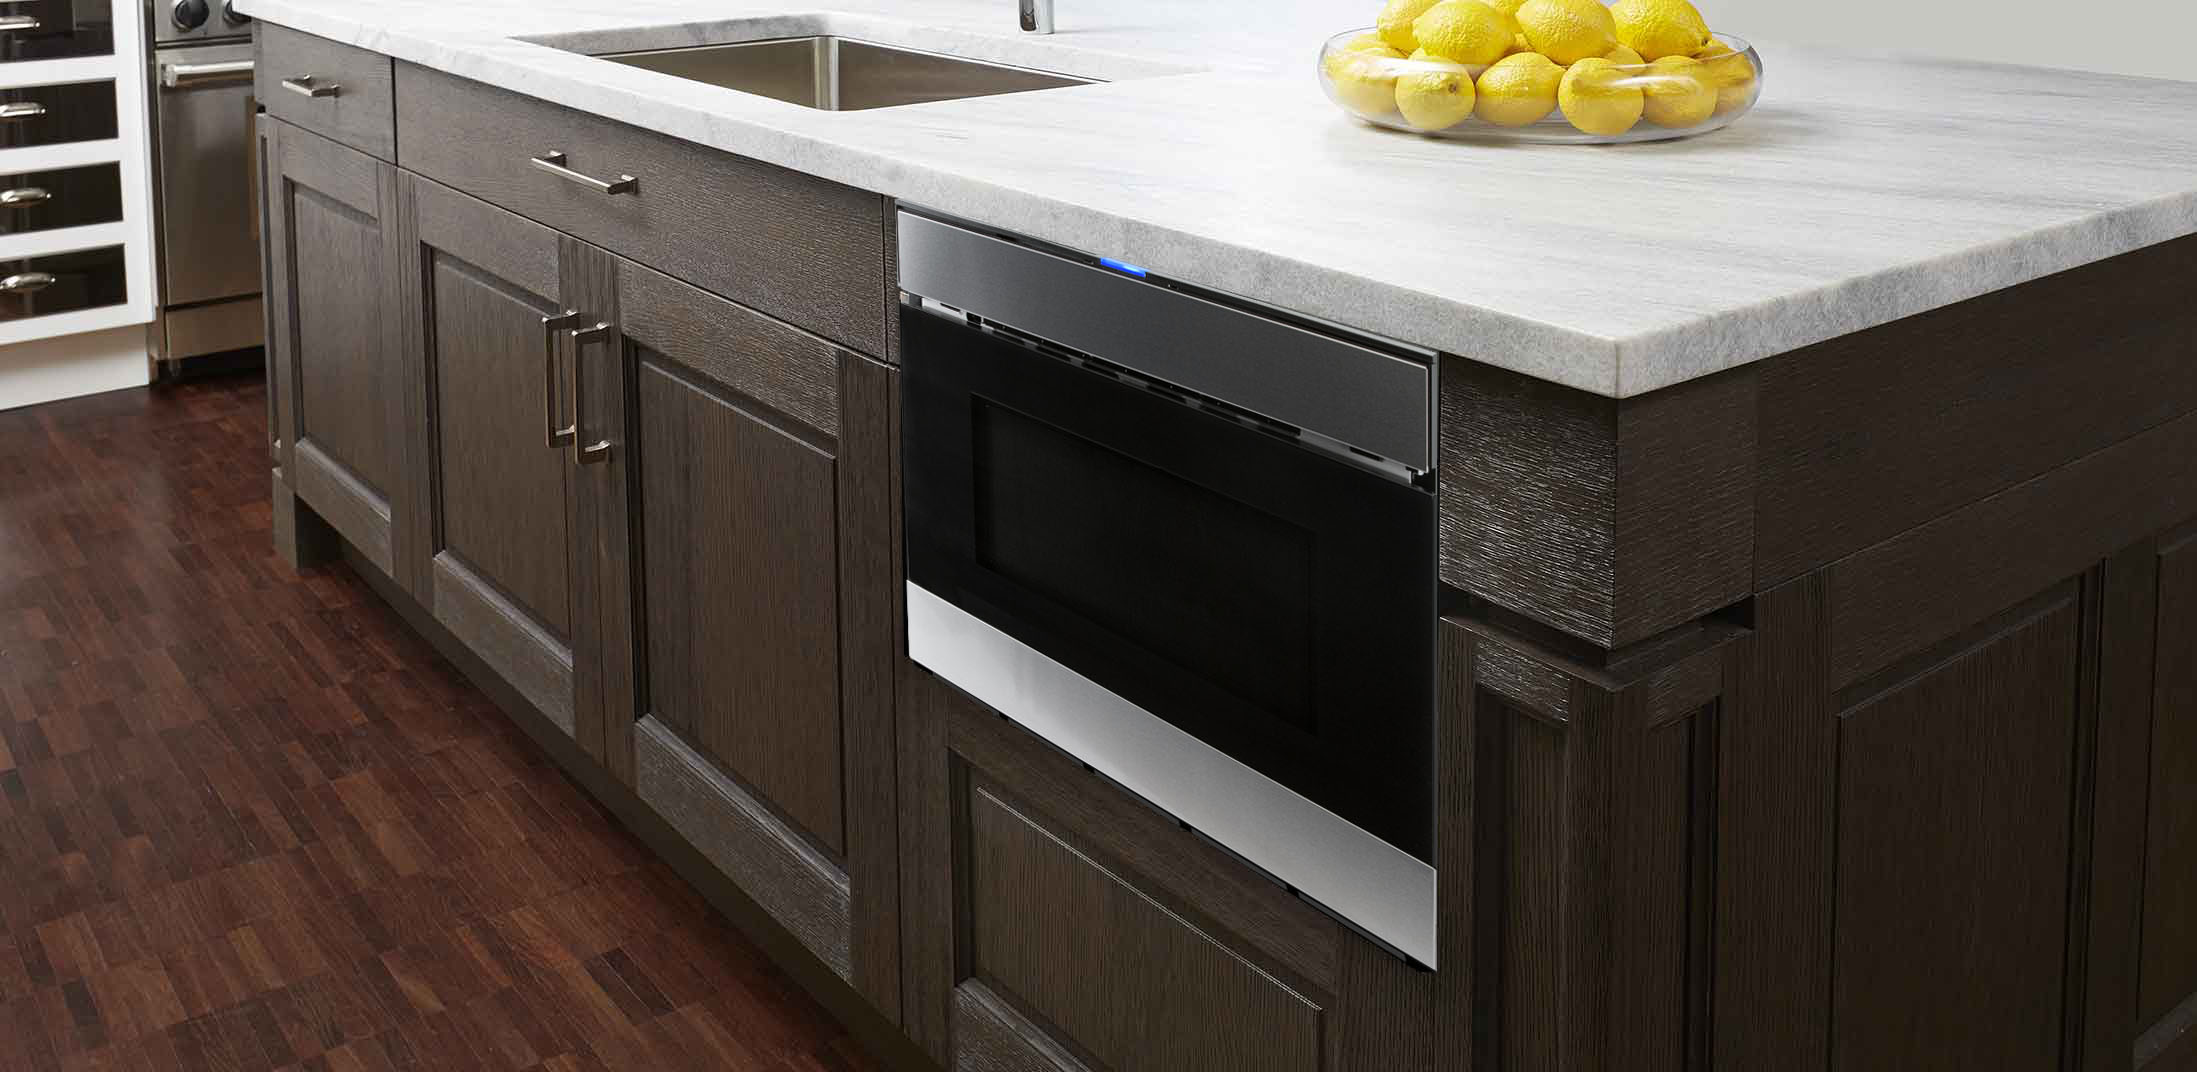 Faster When The Smd2480cs Sharp Microwave Drawer Oven Is Installed Adjacent To Your Food Preparation Area In Islands Peninsulas Or Under Counter